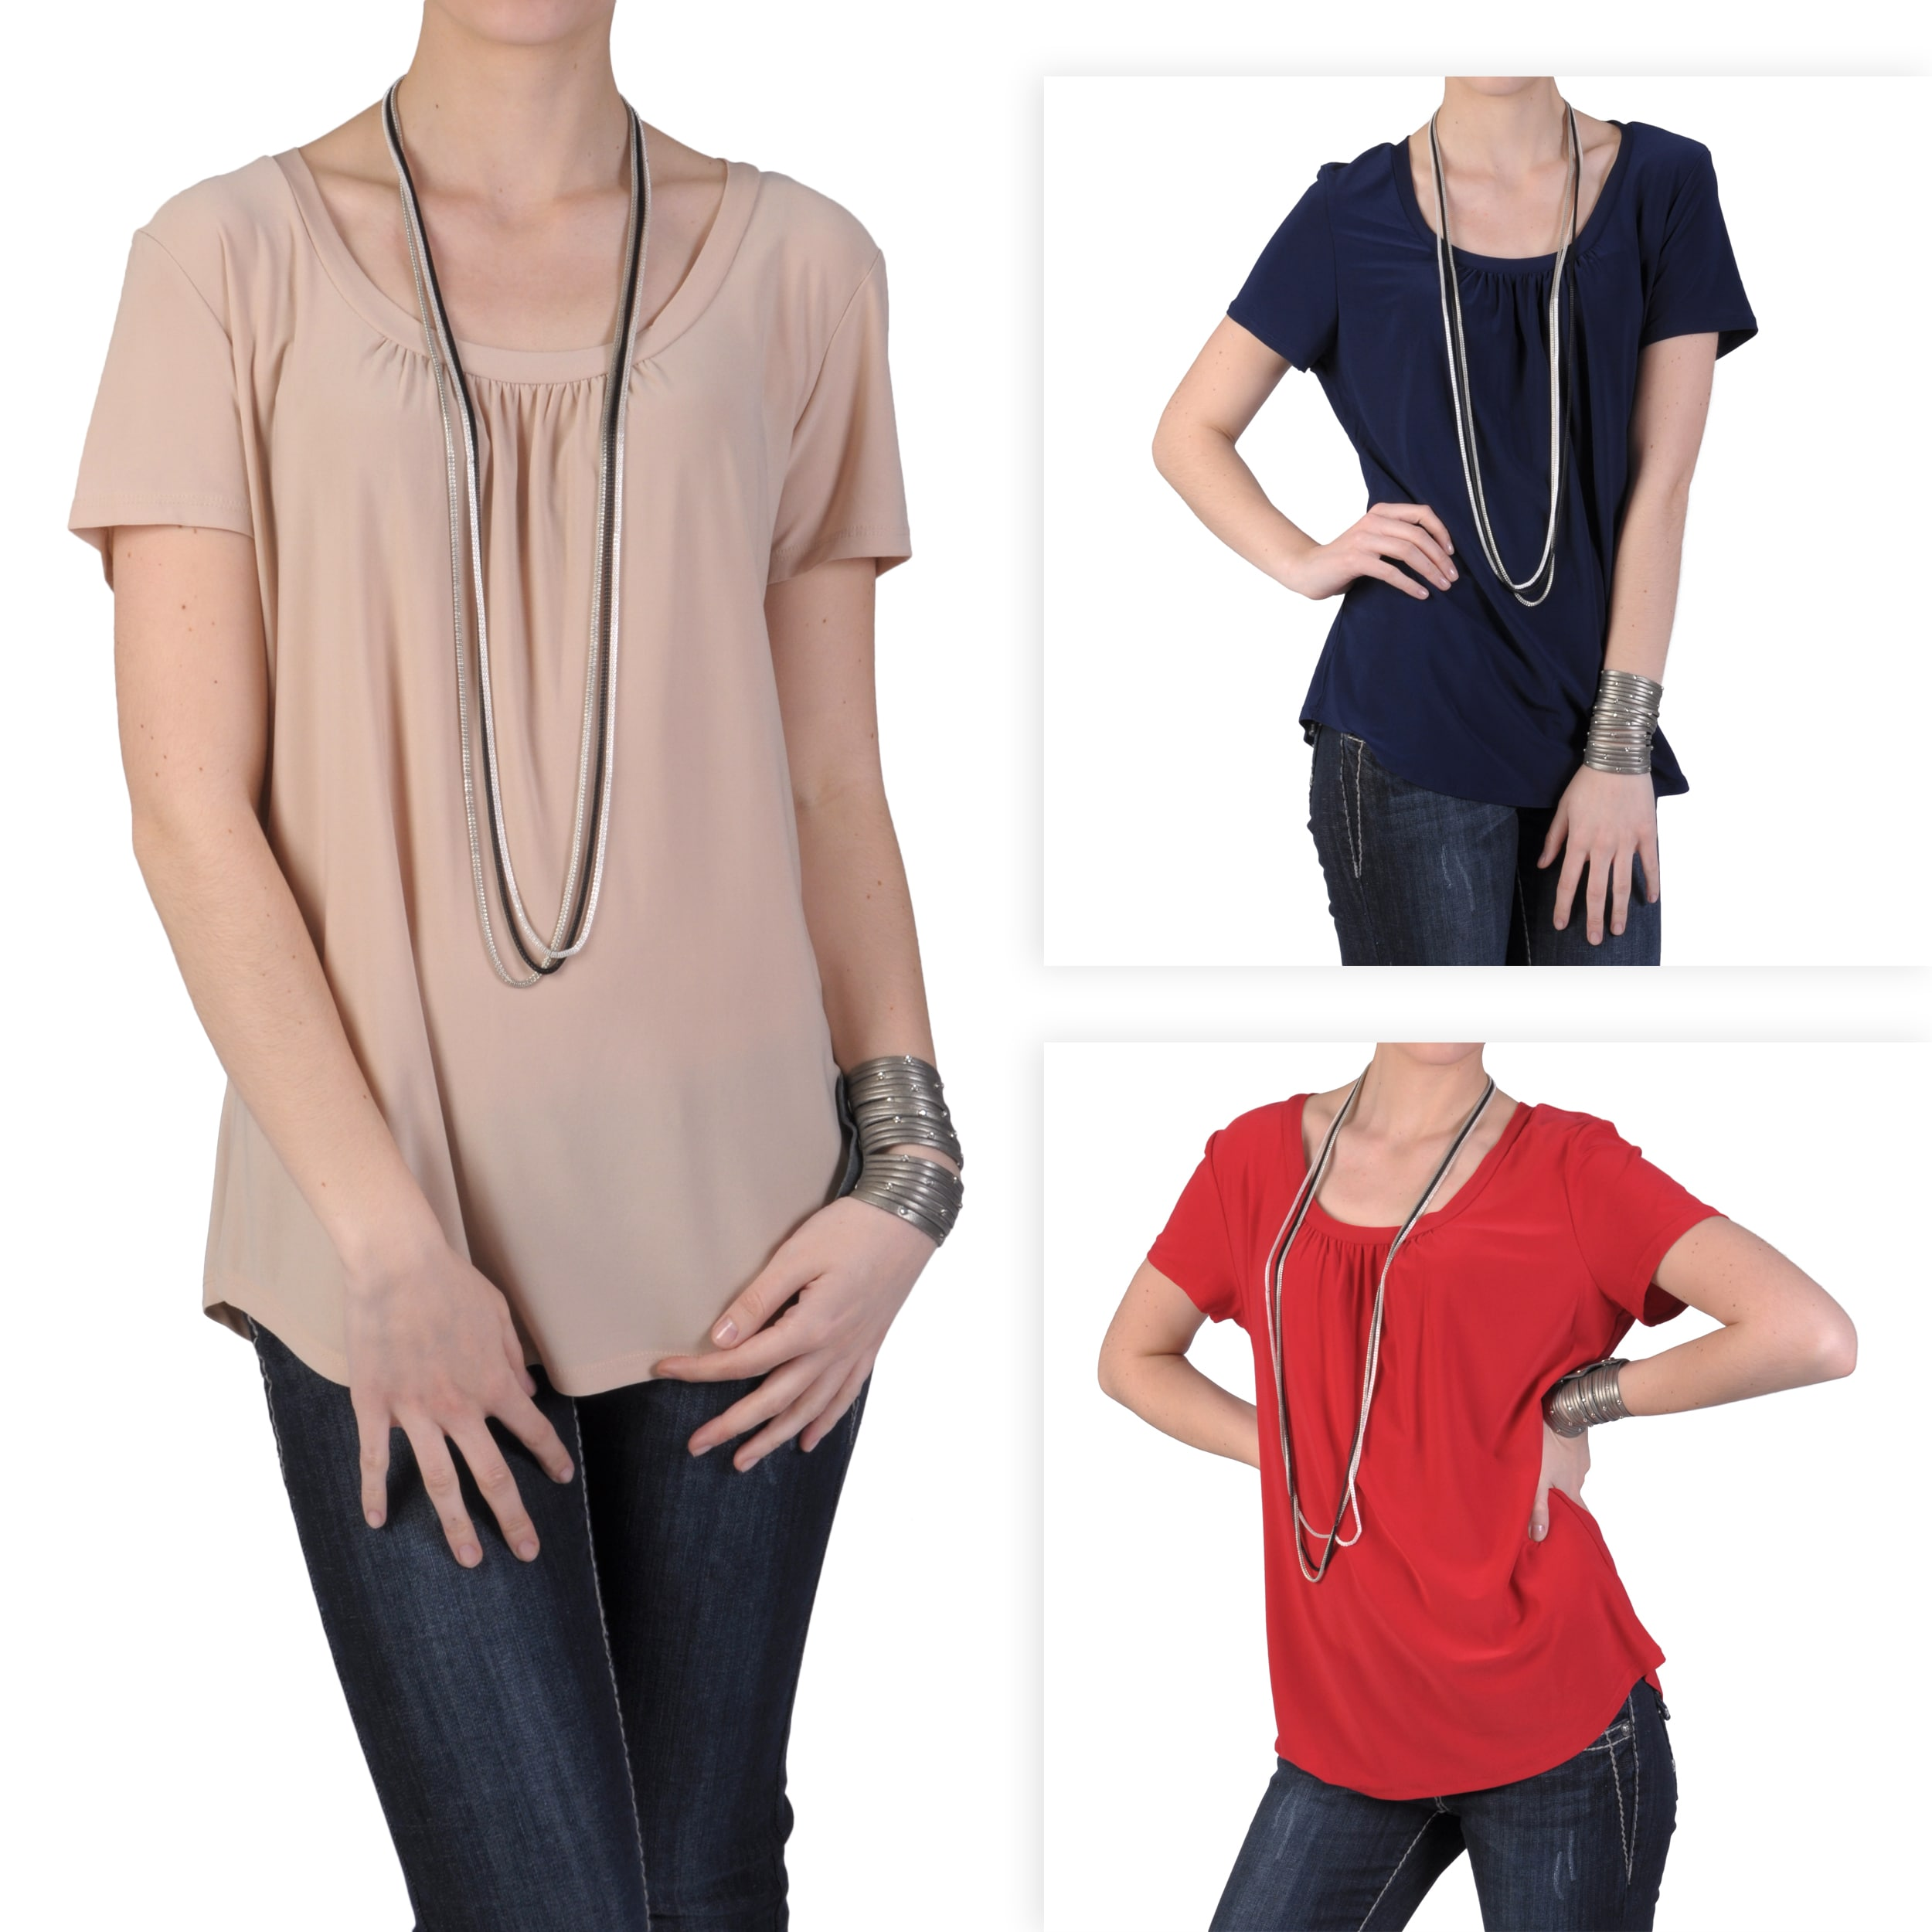 Journee Collection Women's Plus Stretchy Short-sleeve Shirt